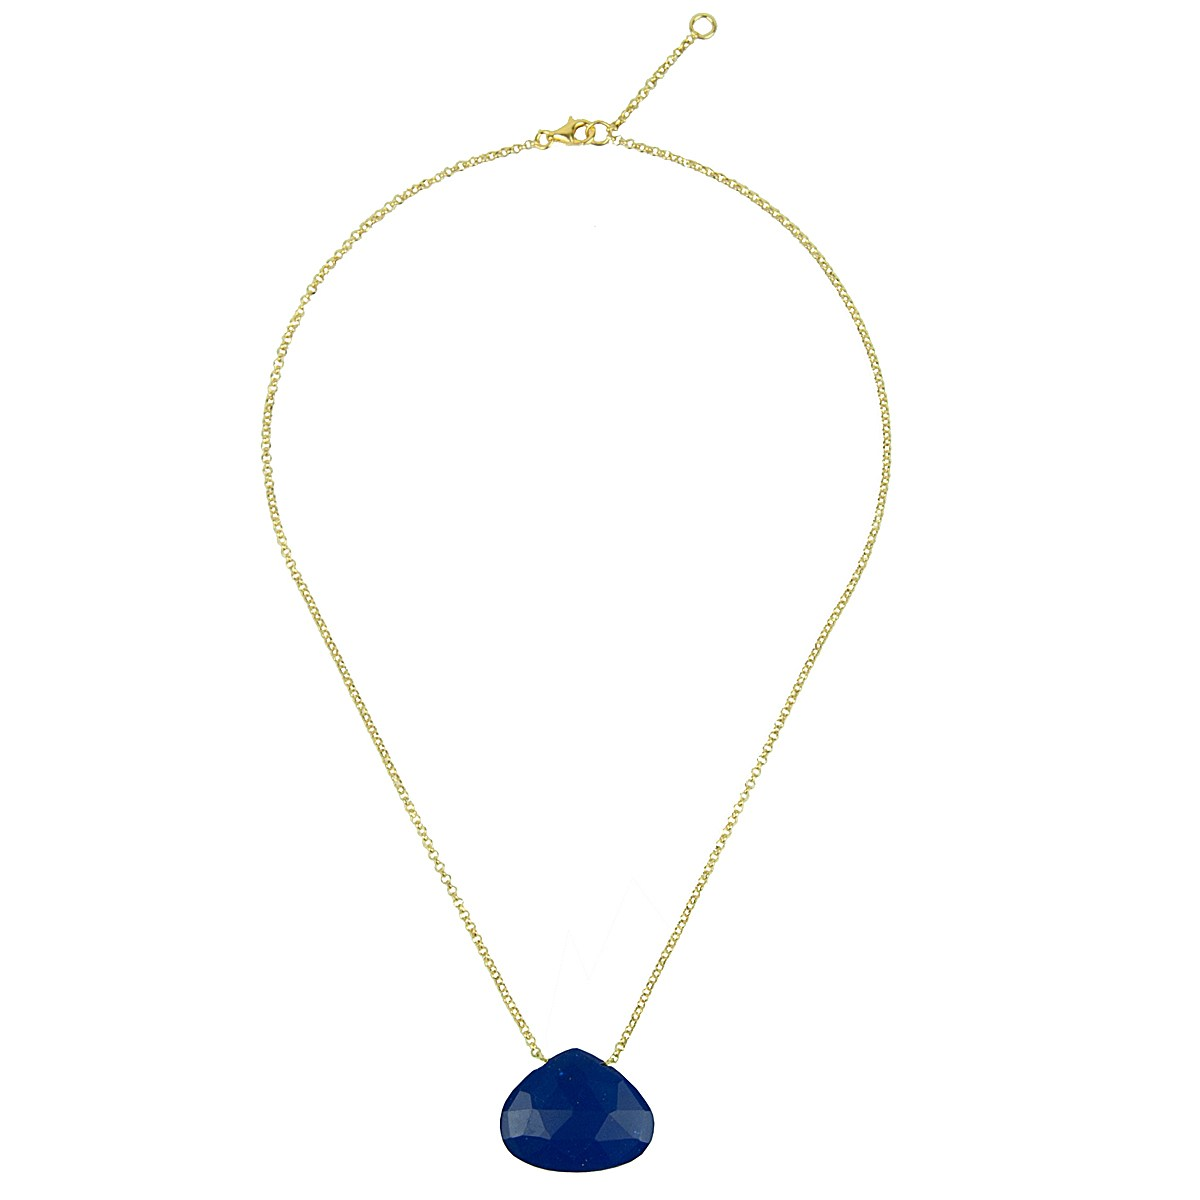 semiprecious lapis lazuli stone with fine gold plated silver chain